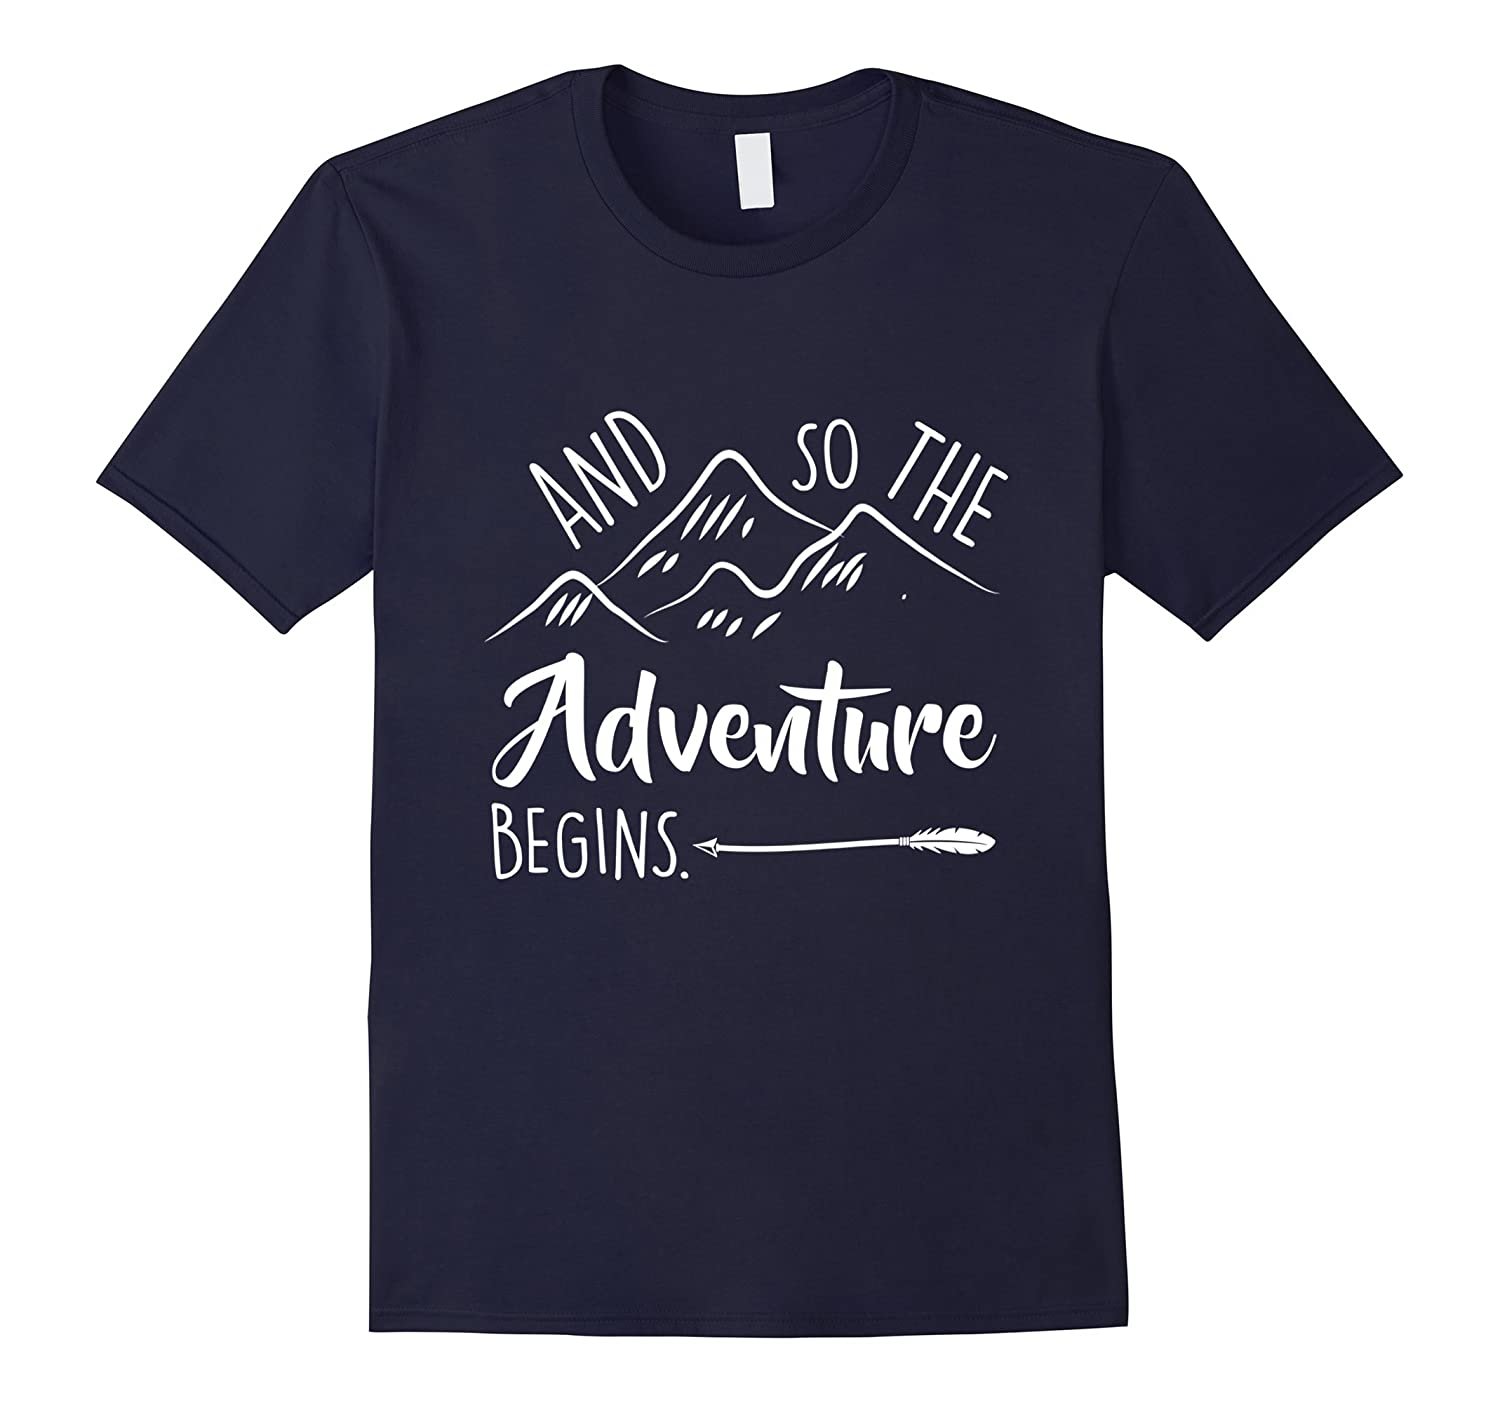 Camp Shirts And So The Adventure Begins T-Shirt-TJ